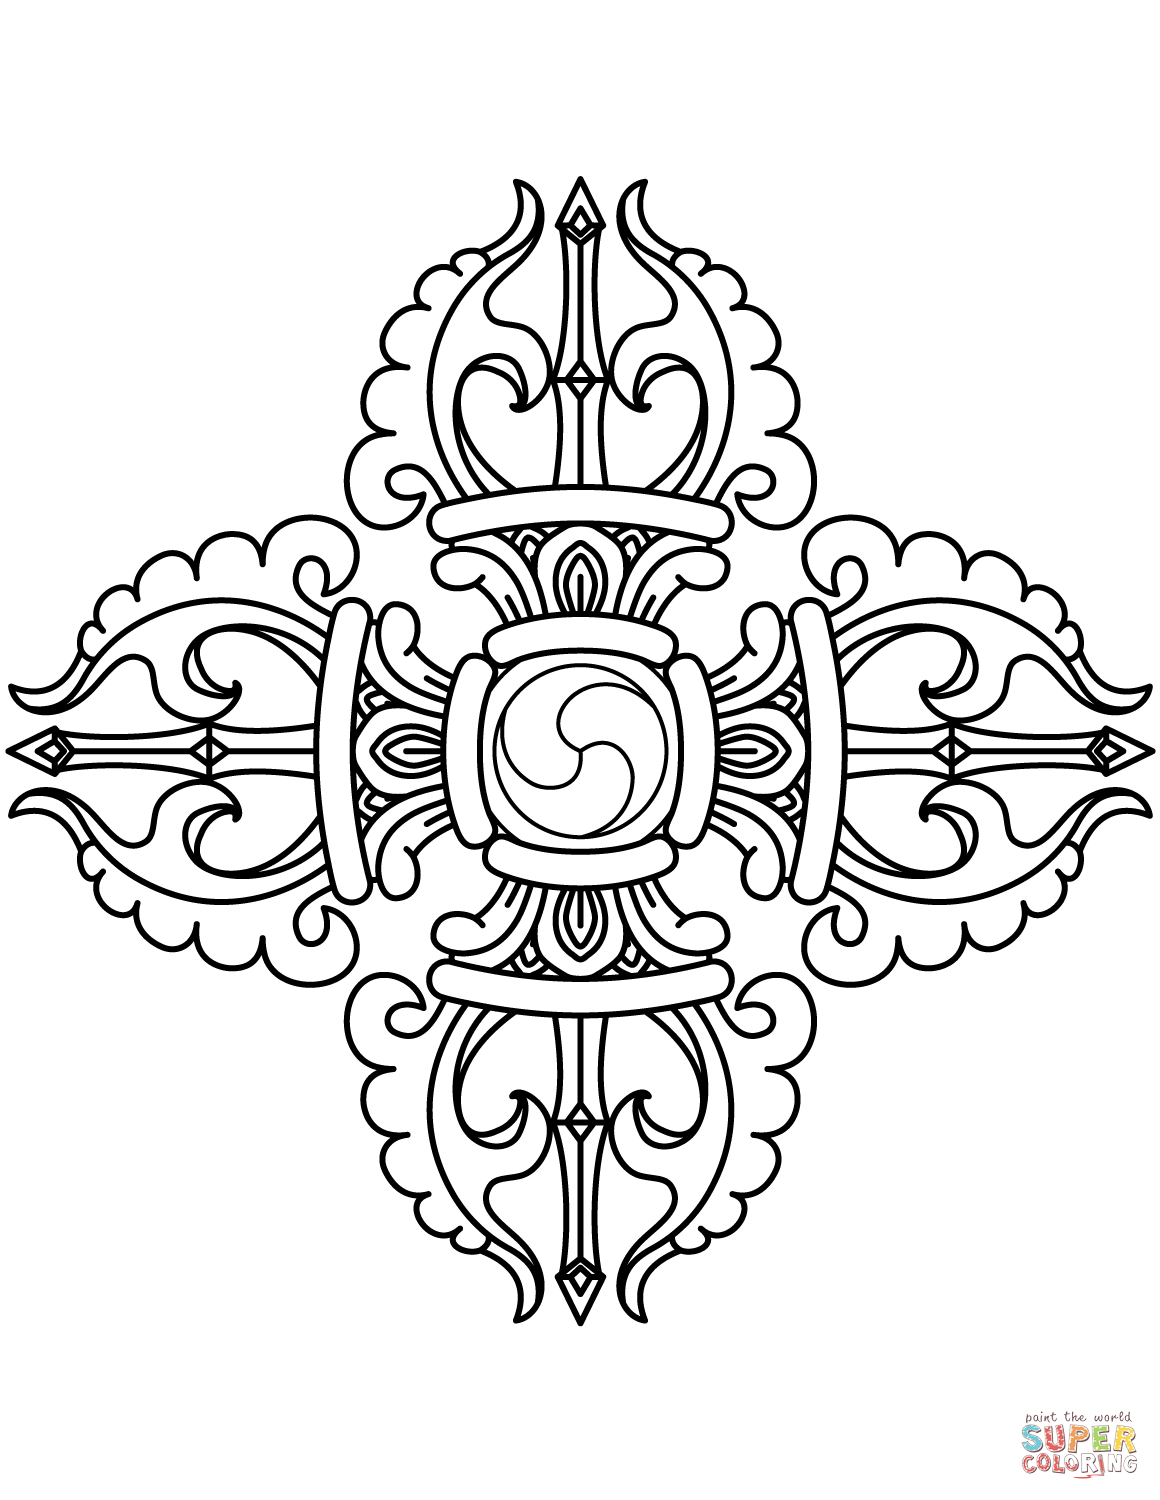 buddhist coloring pages buddha coloring easy coloring pages coloring pages buddhist